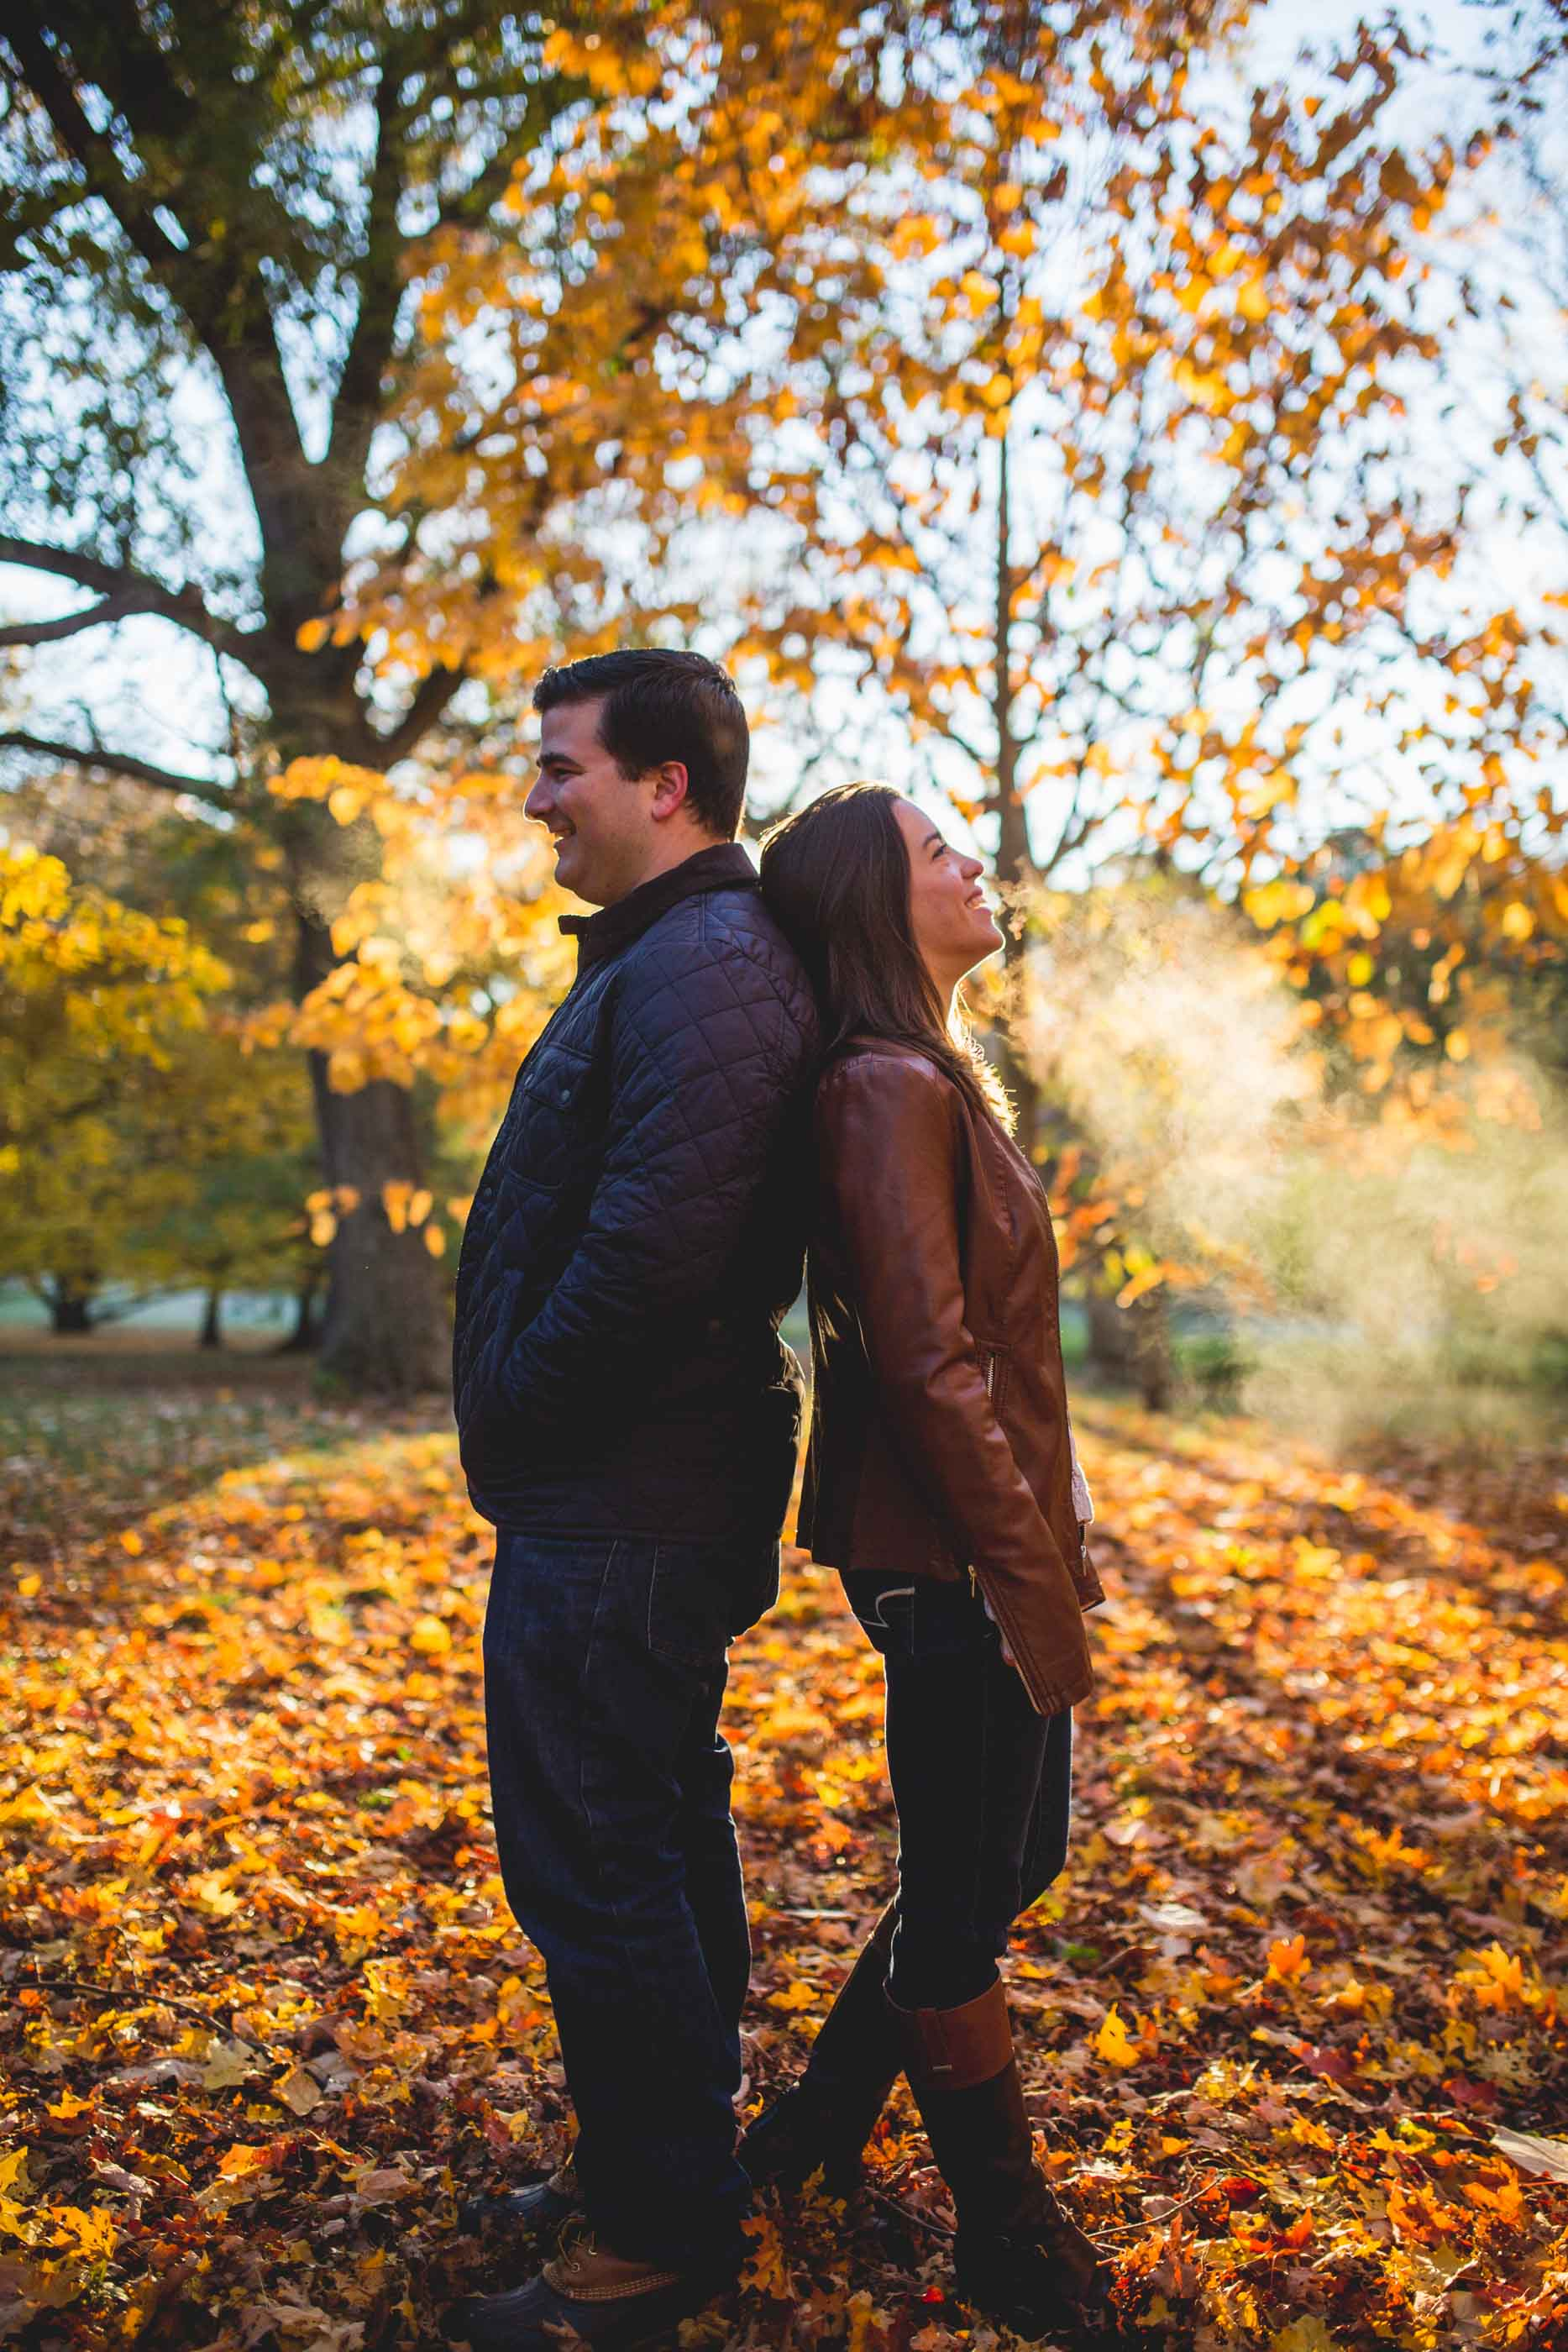 Arboretum-Engagement-Photographer-3.jpg